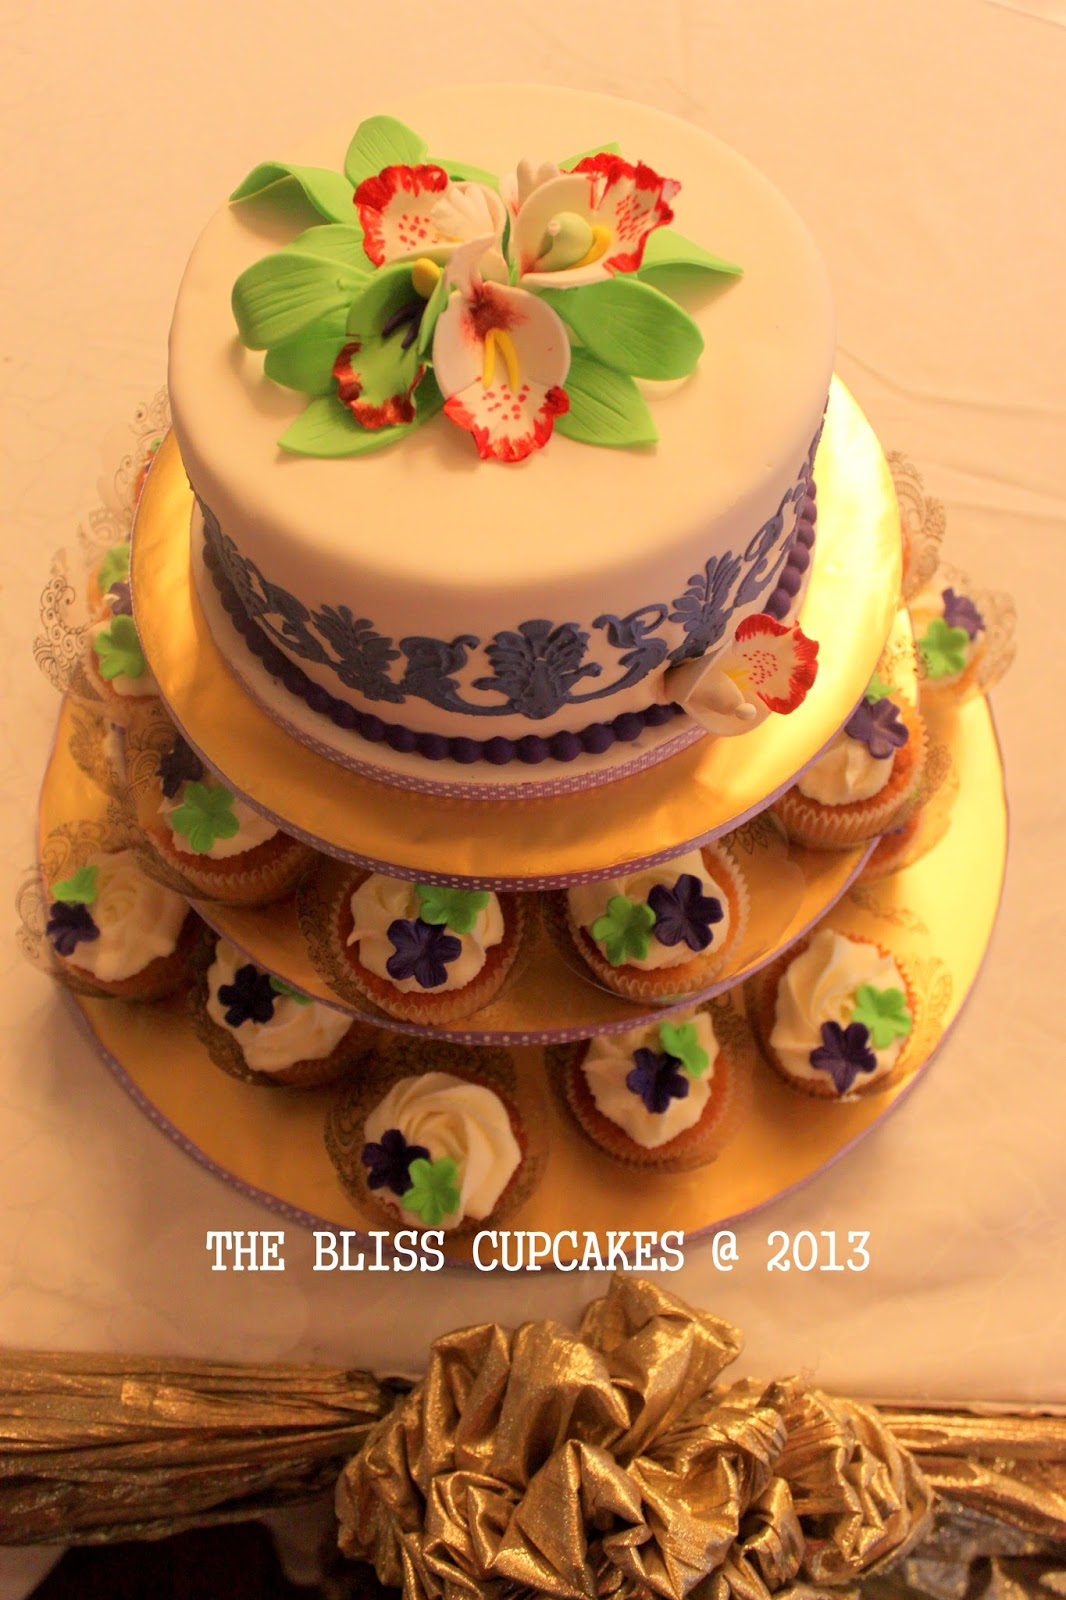 The Bliss Cupcakes Purple and Green Themed Wedding Cake